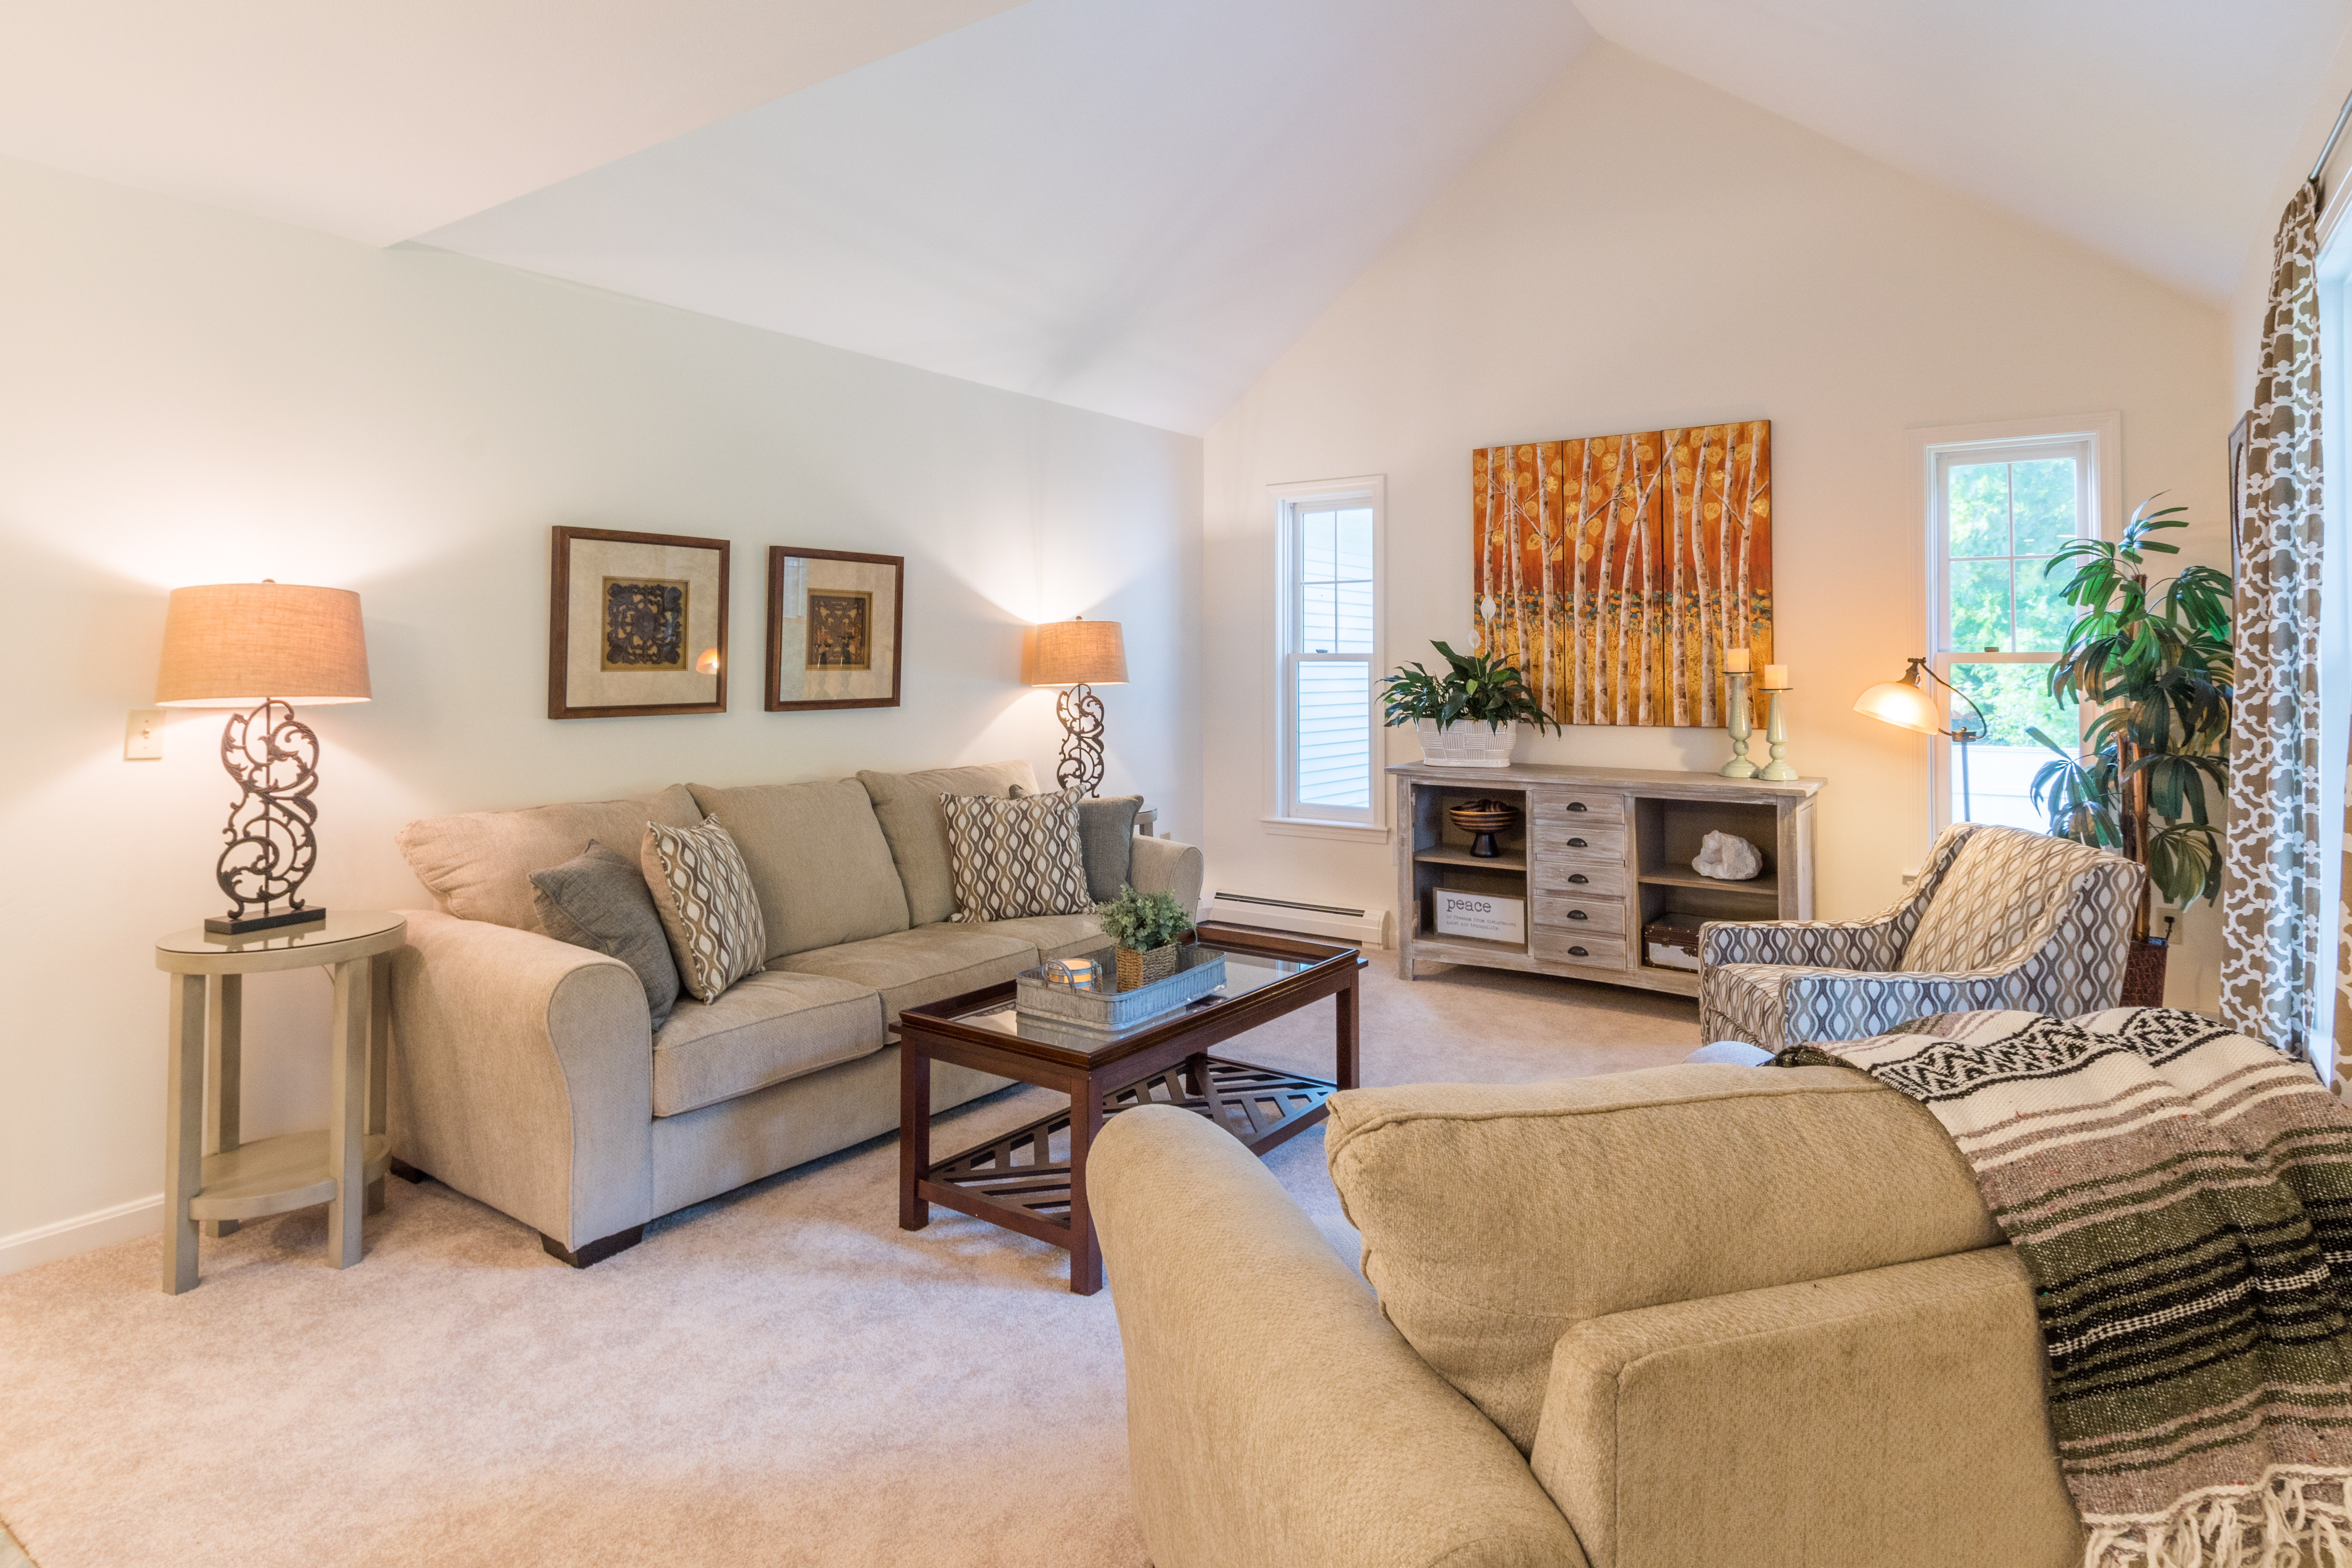 Home Staging Lisa Law Feng Shui Help Your Home Look